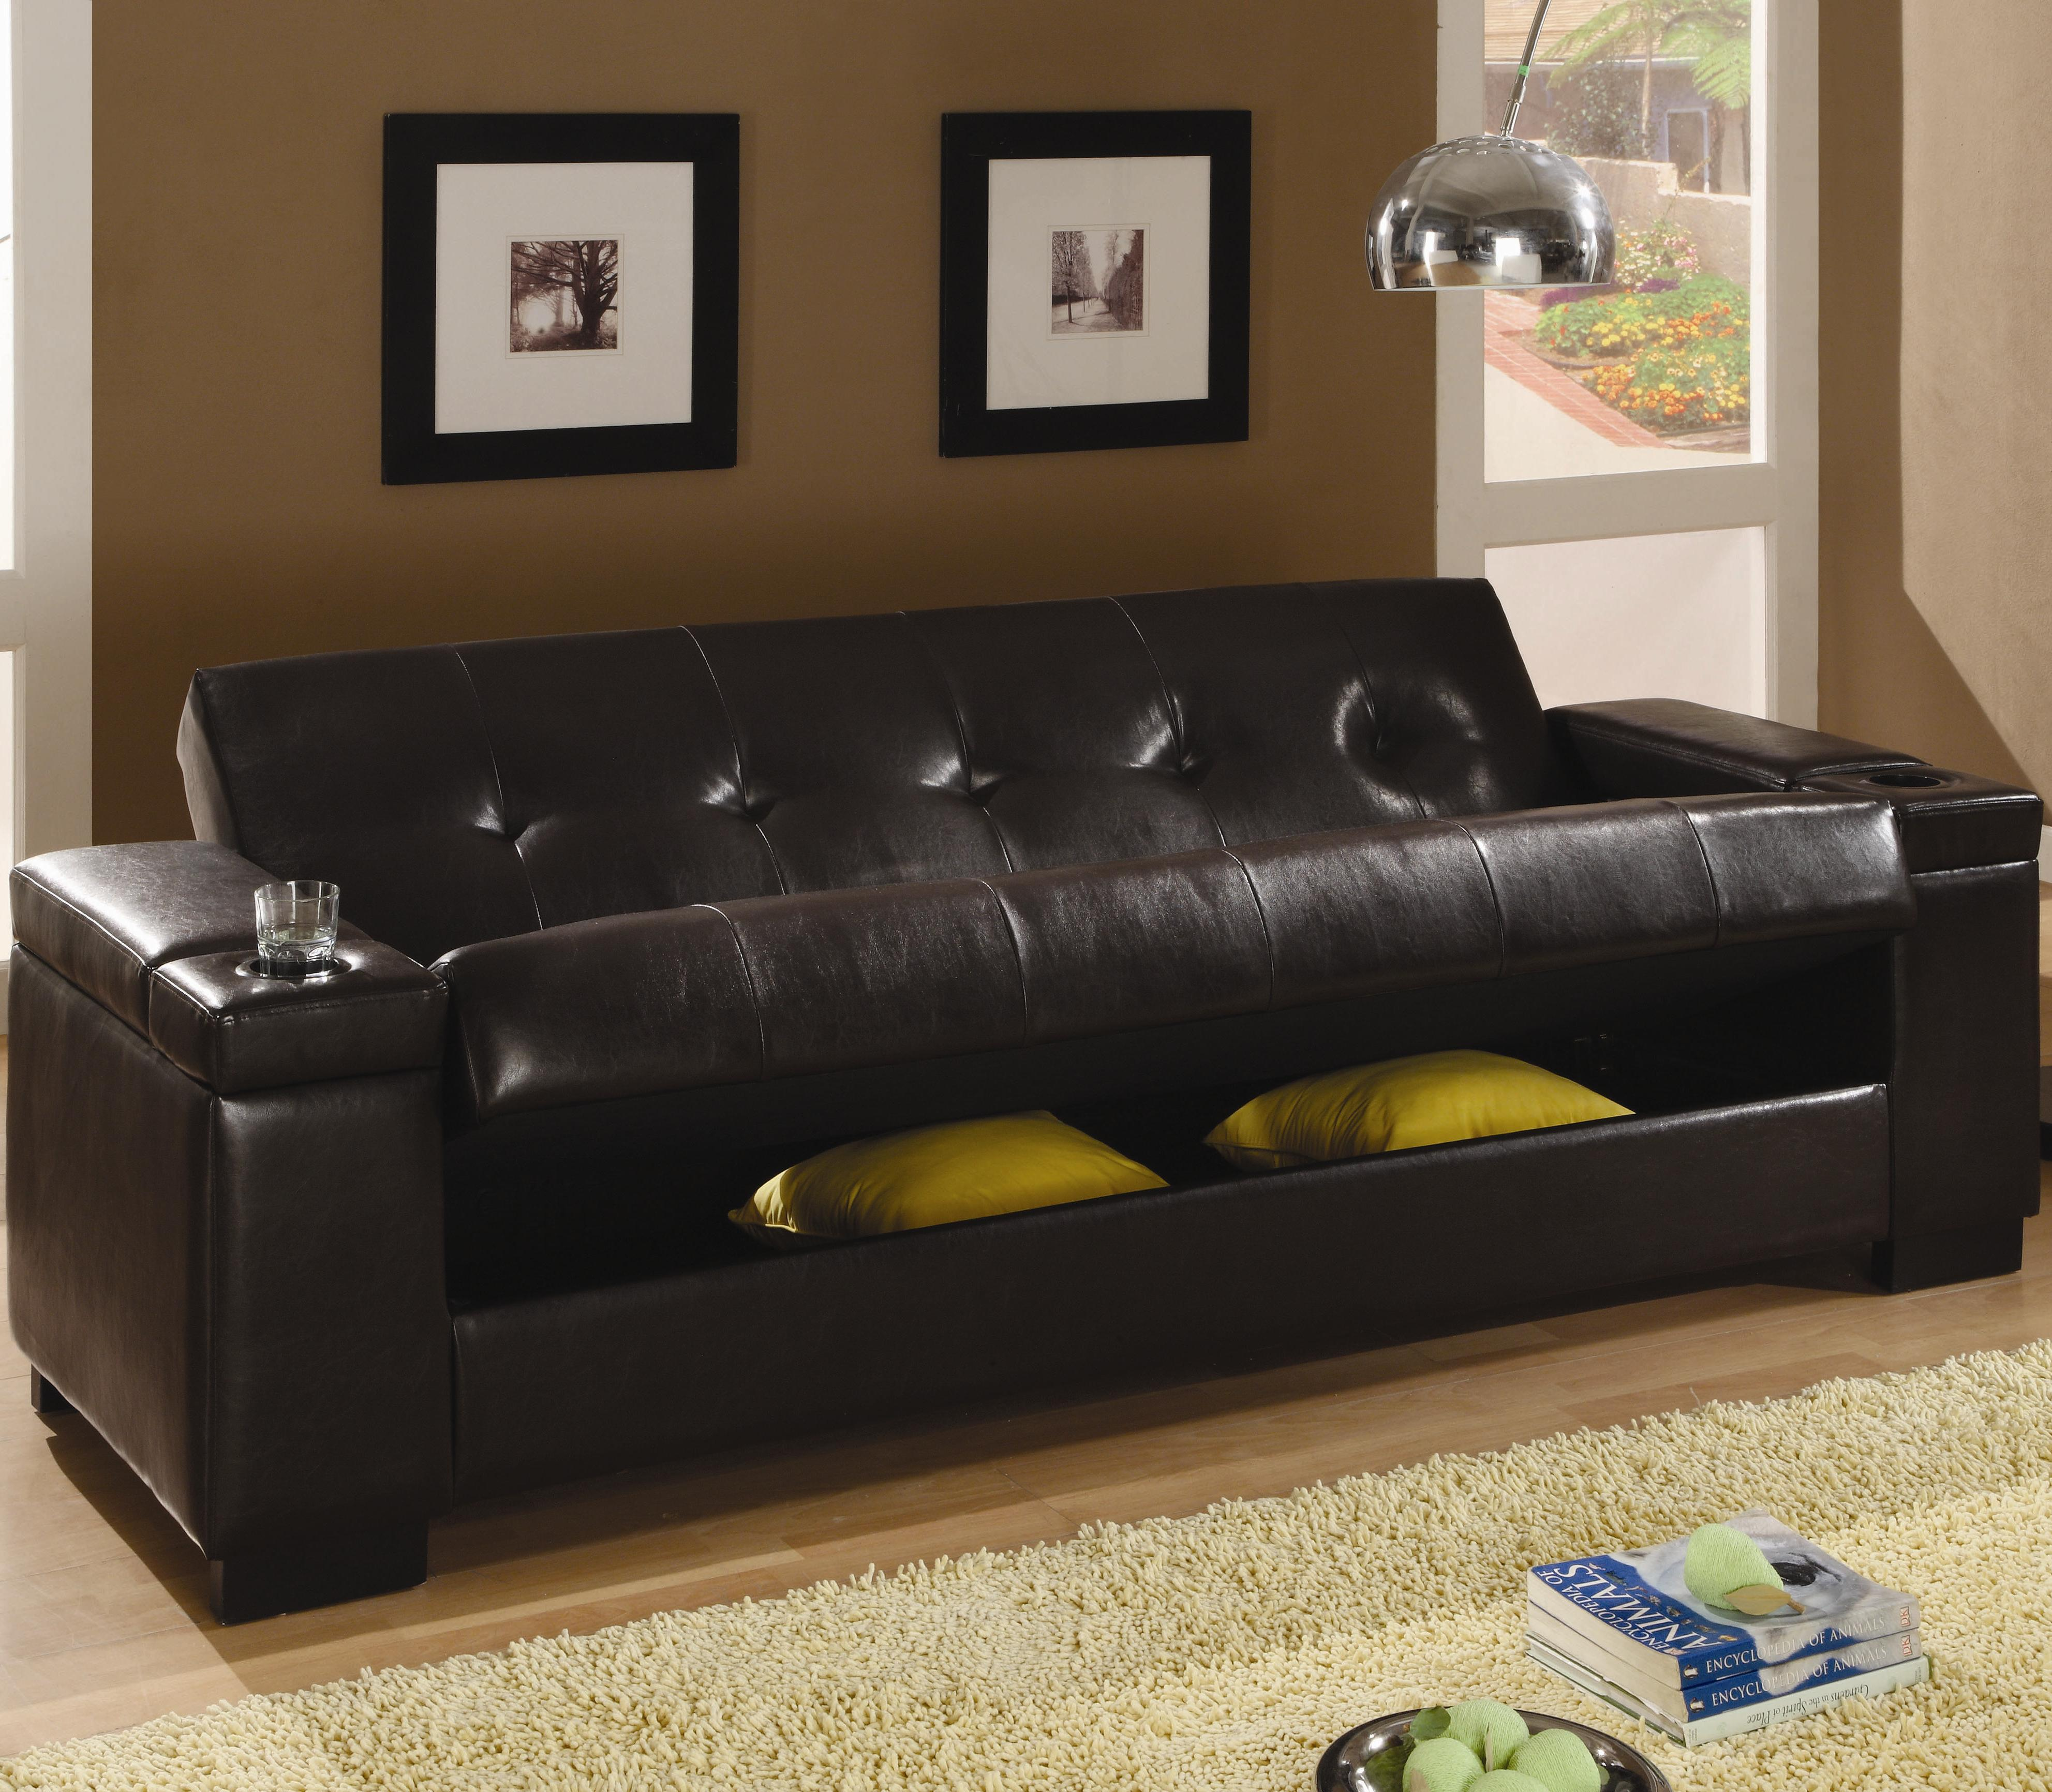 Fine Furniture Sofa Beds And Futons 300143 Faux Leather